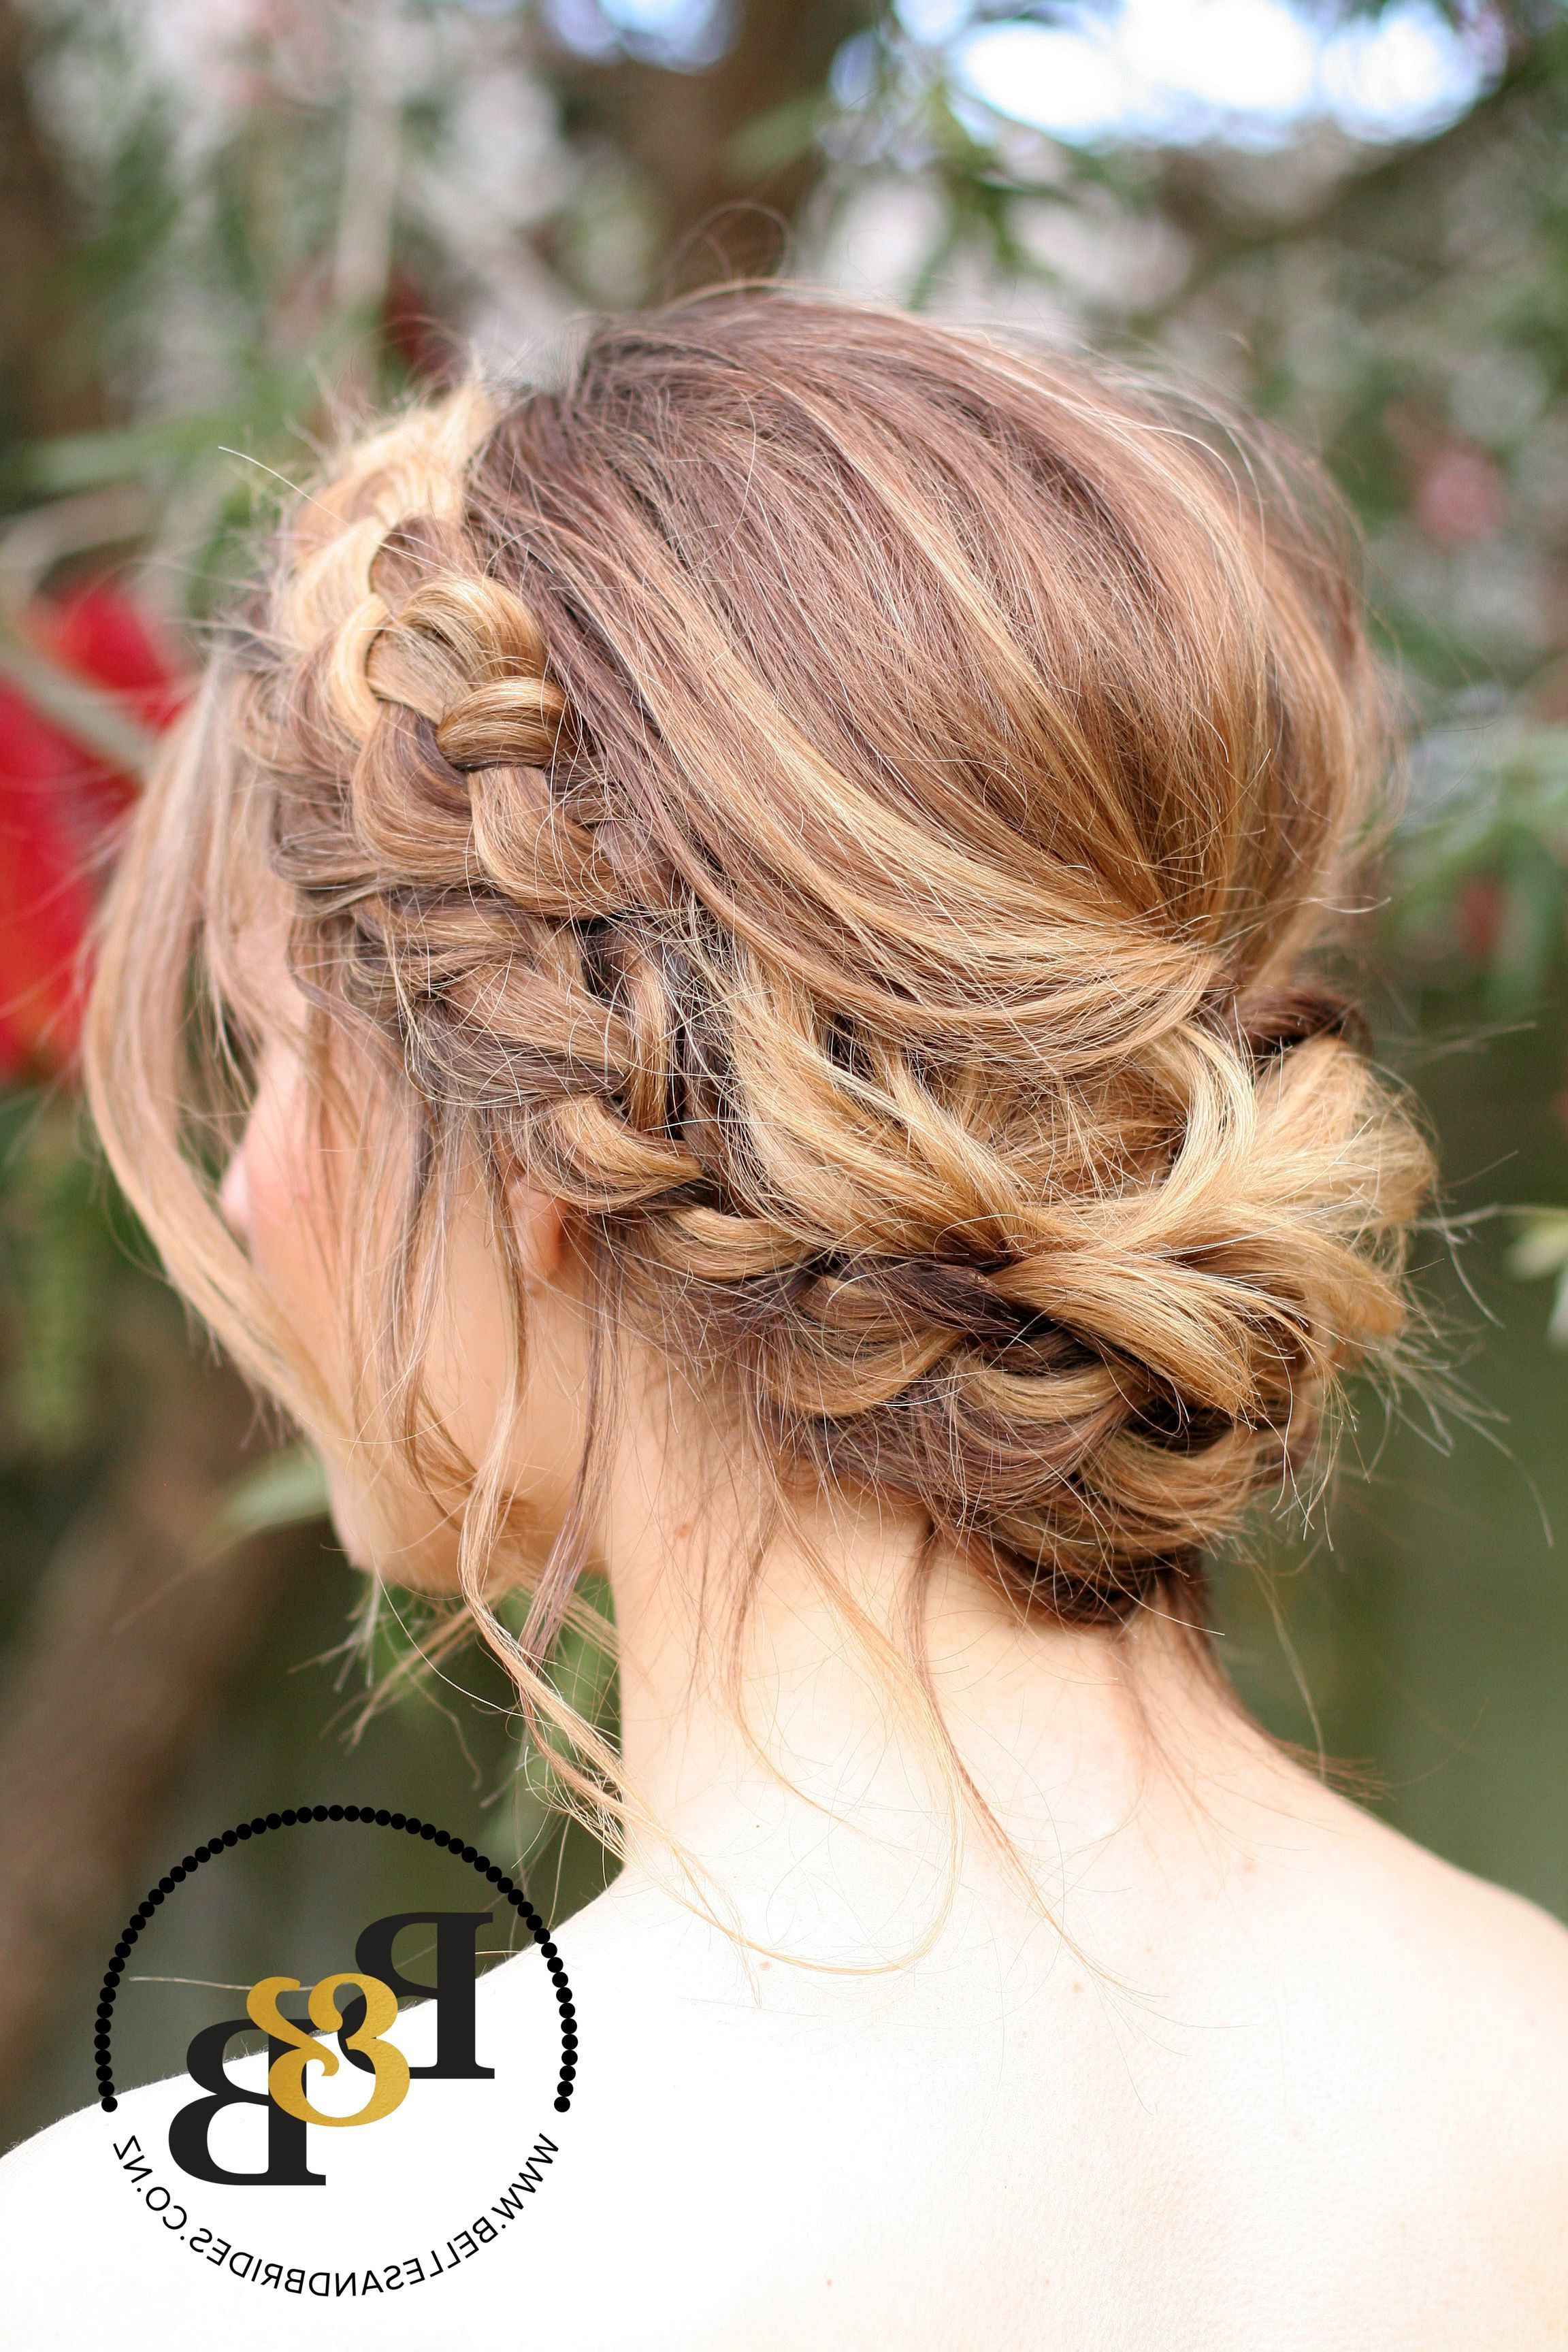 Hairstyles : Chic Braided Chignon Superb Wedding Hair With Intended For Trendy Braided Chignon Bun Hairstyles (View 7 of 20)